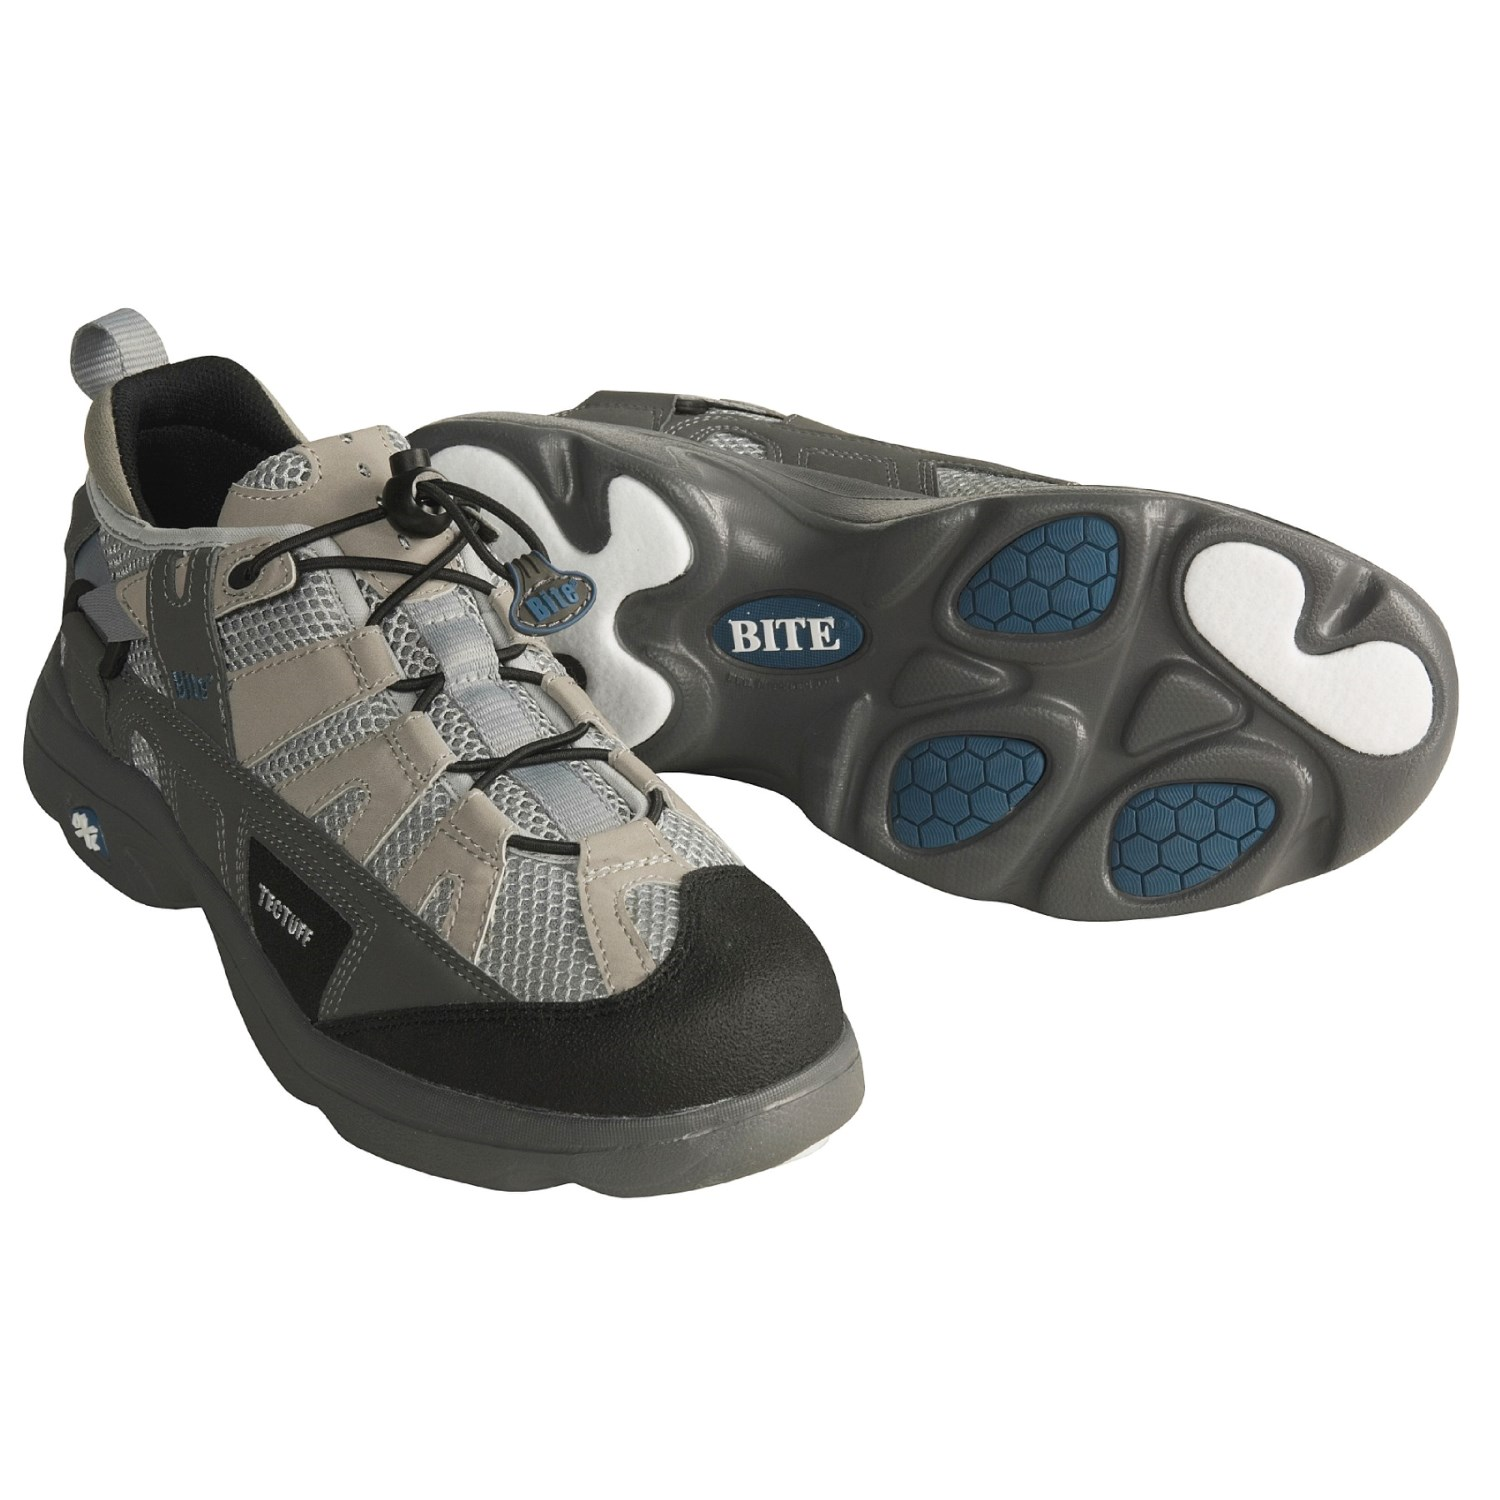 Bite shoat low top water shoes for men 96916 save 62 for Fishing shoes for the boat